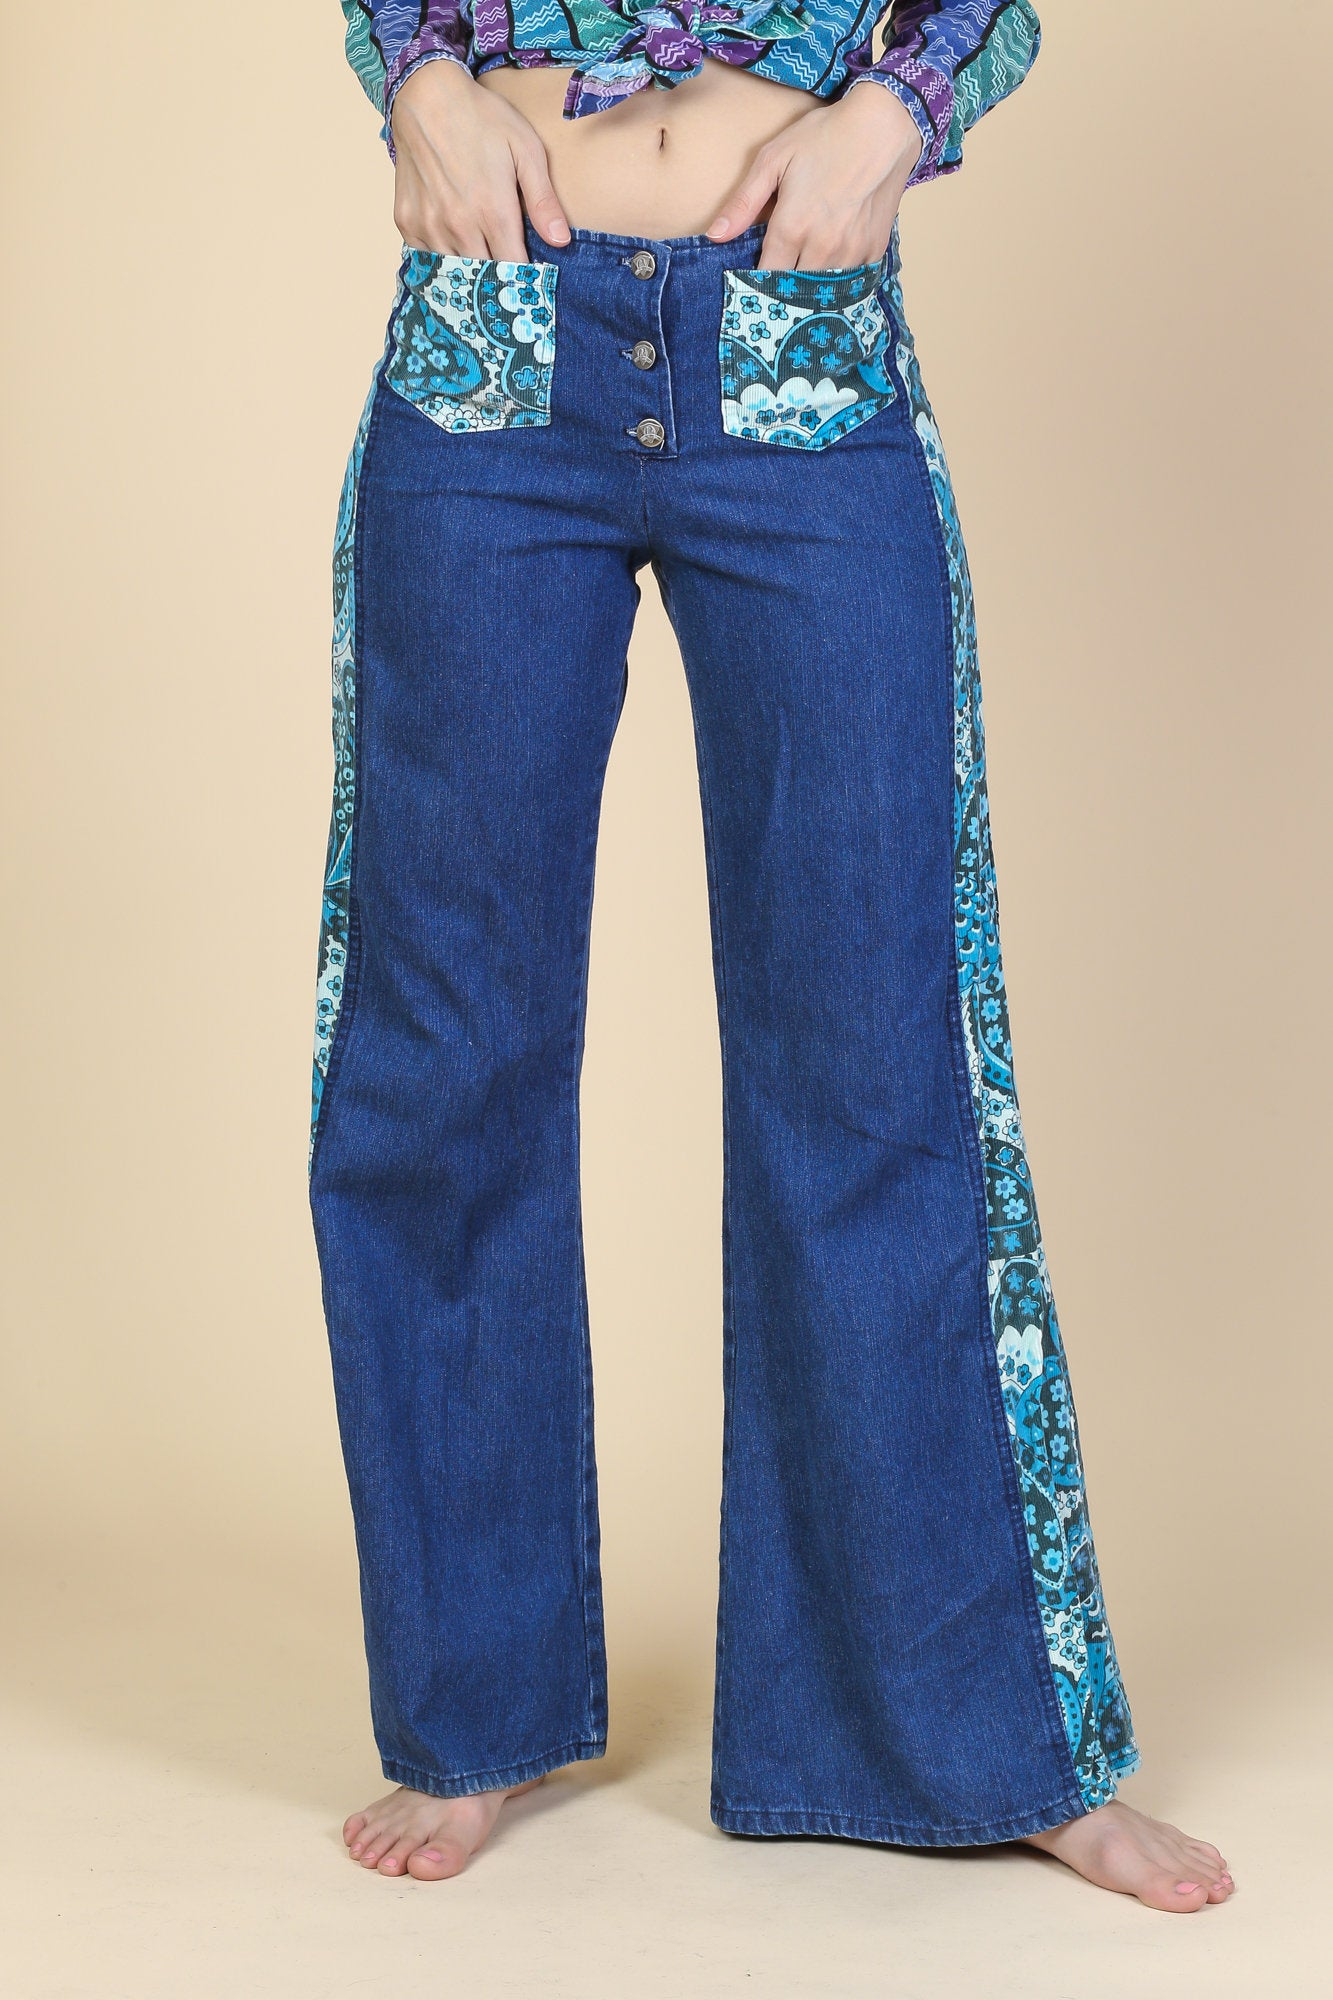 Vintage Hippie Bell Bottom Jeans - Small